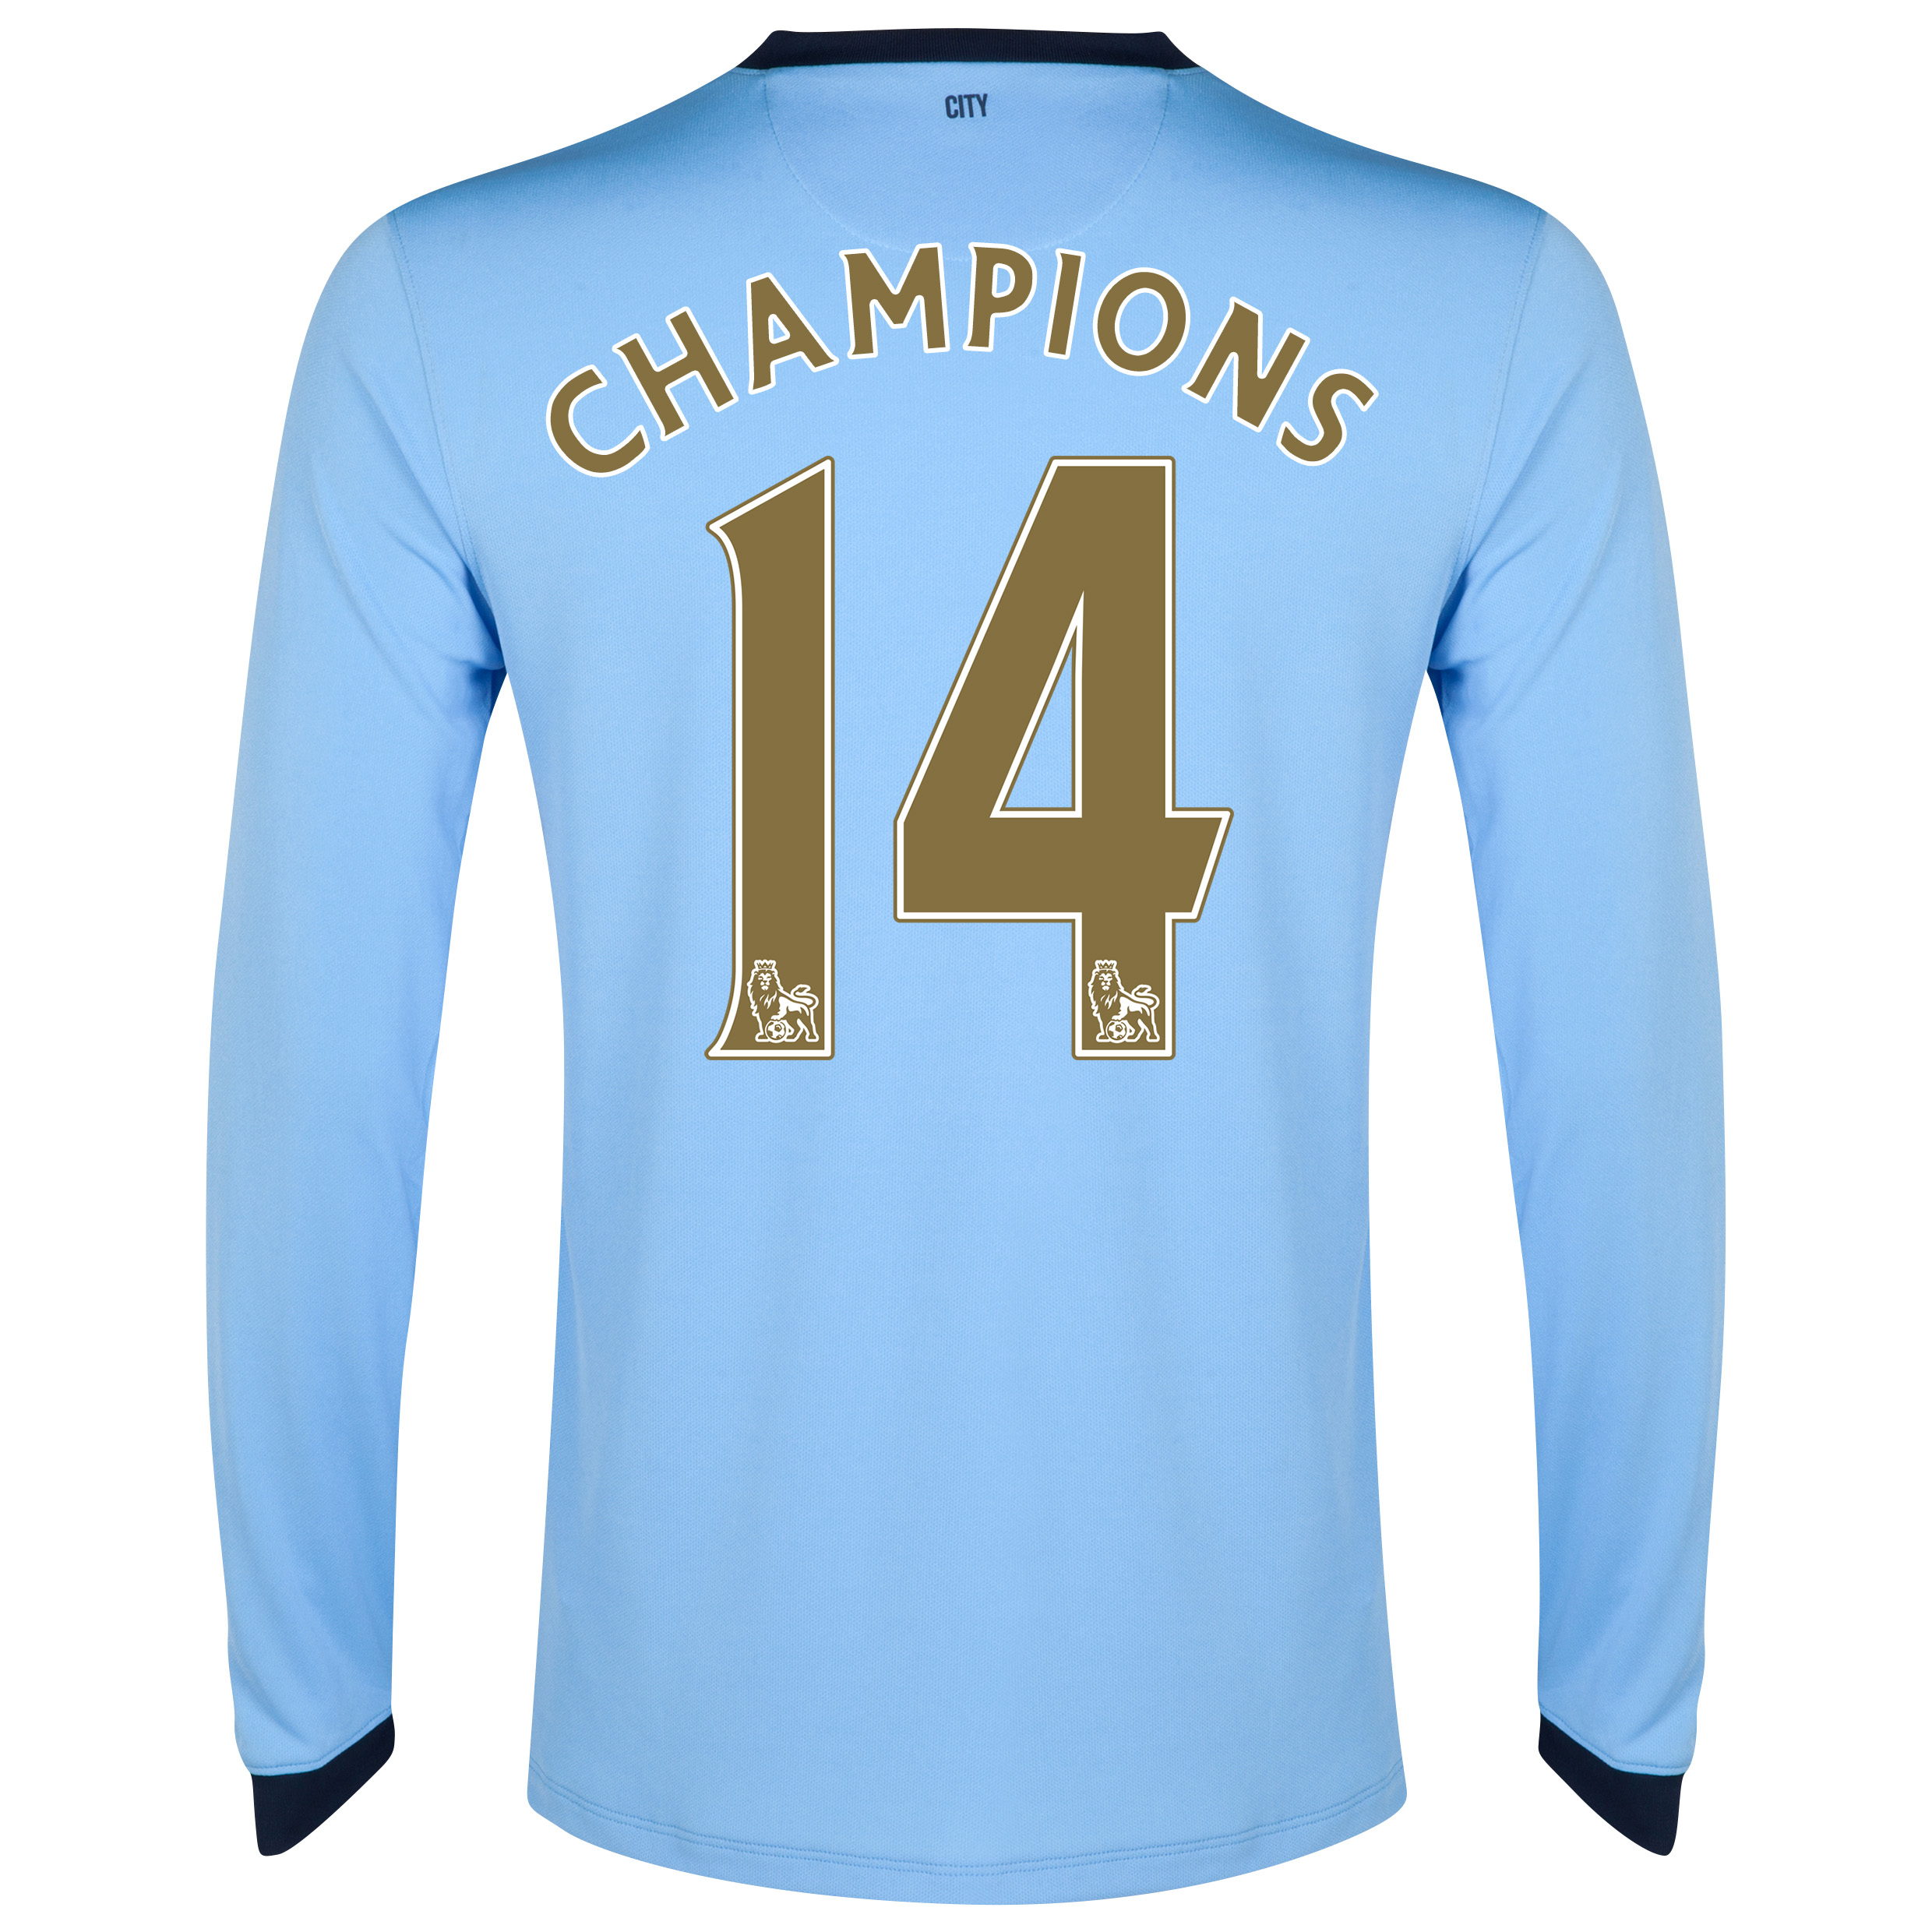 Manchester City Home Shirt 2014/15 - Long Sleeve Sky Blue with Gold Champions 14 printing